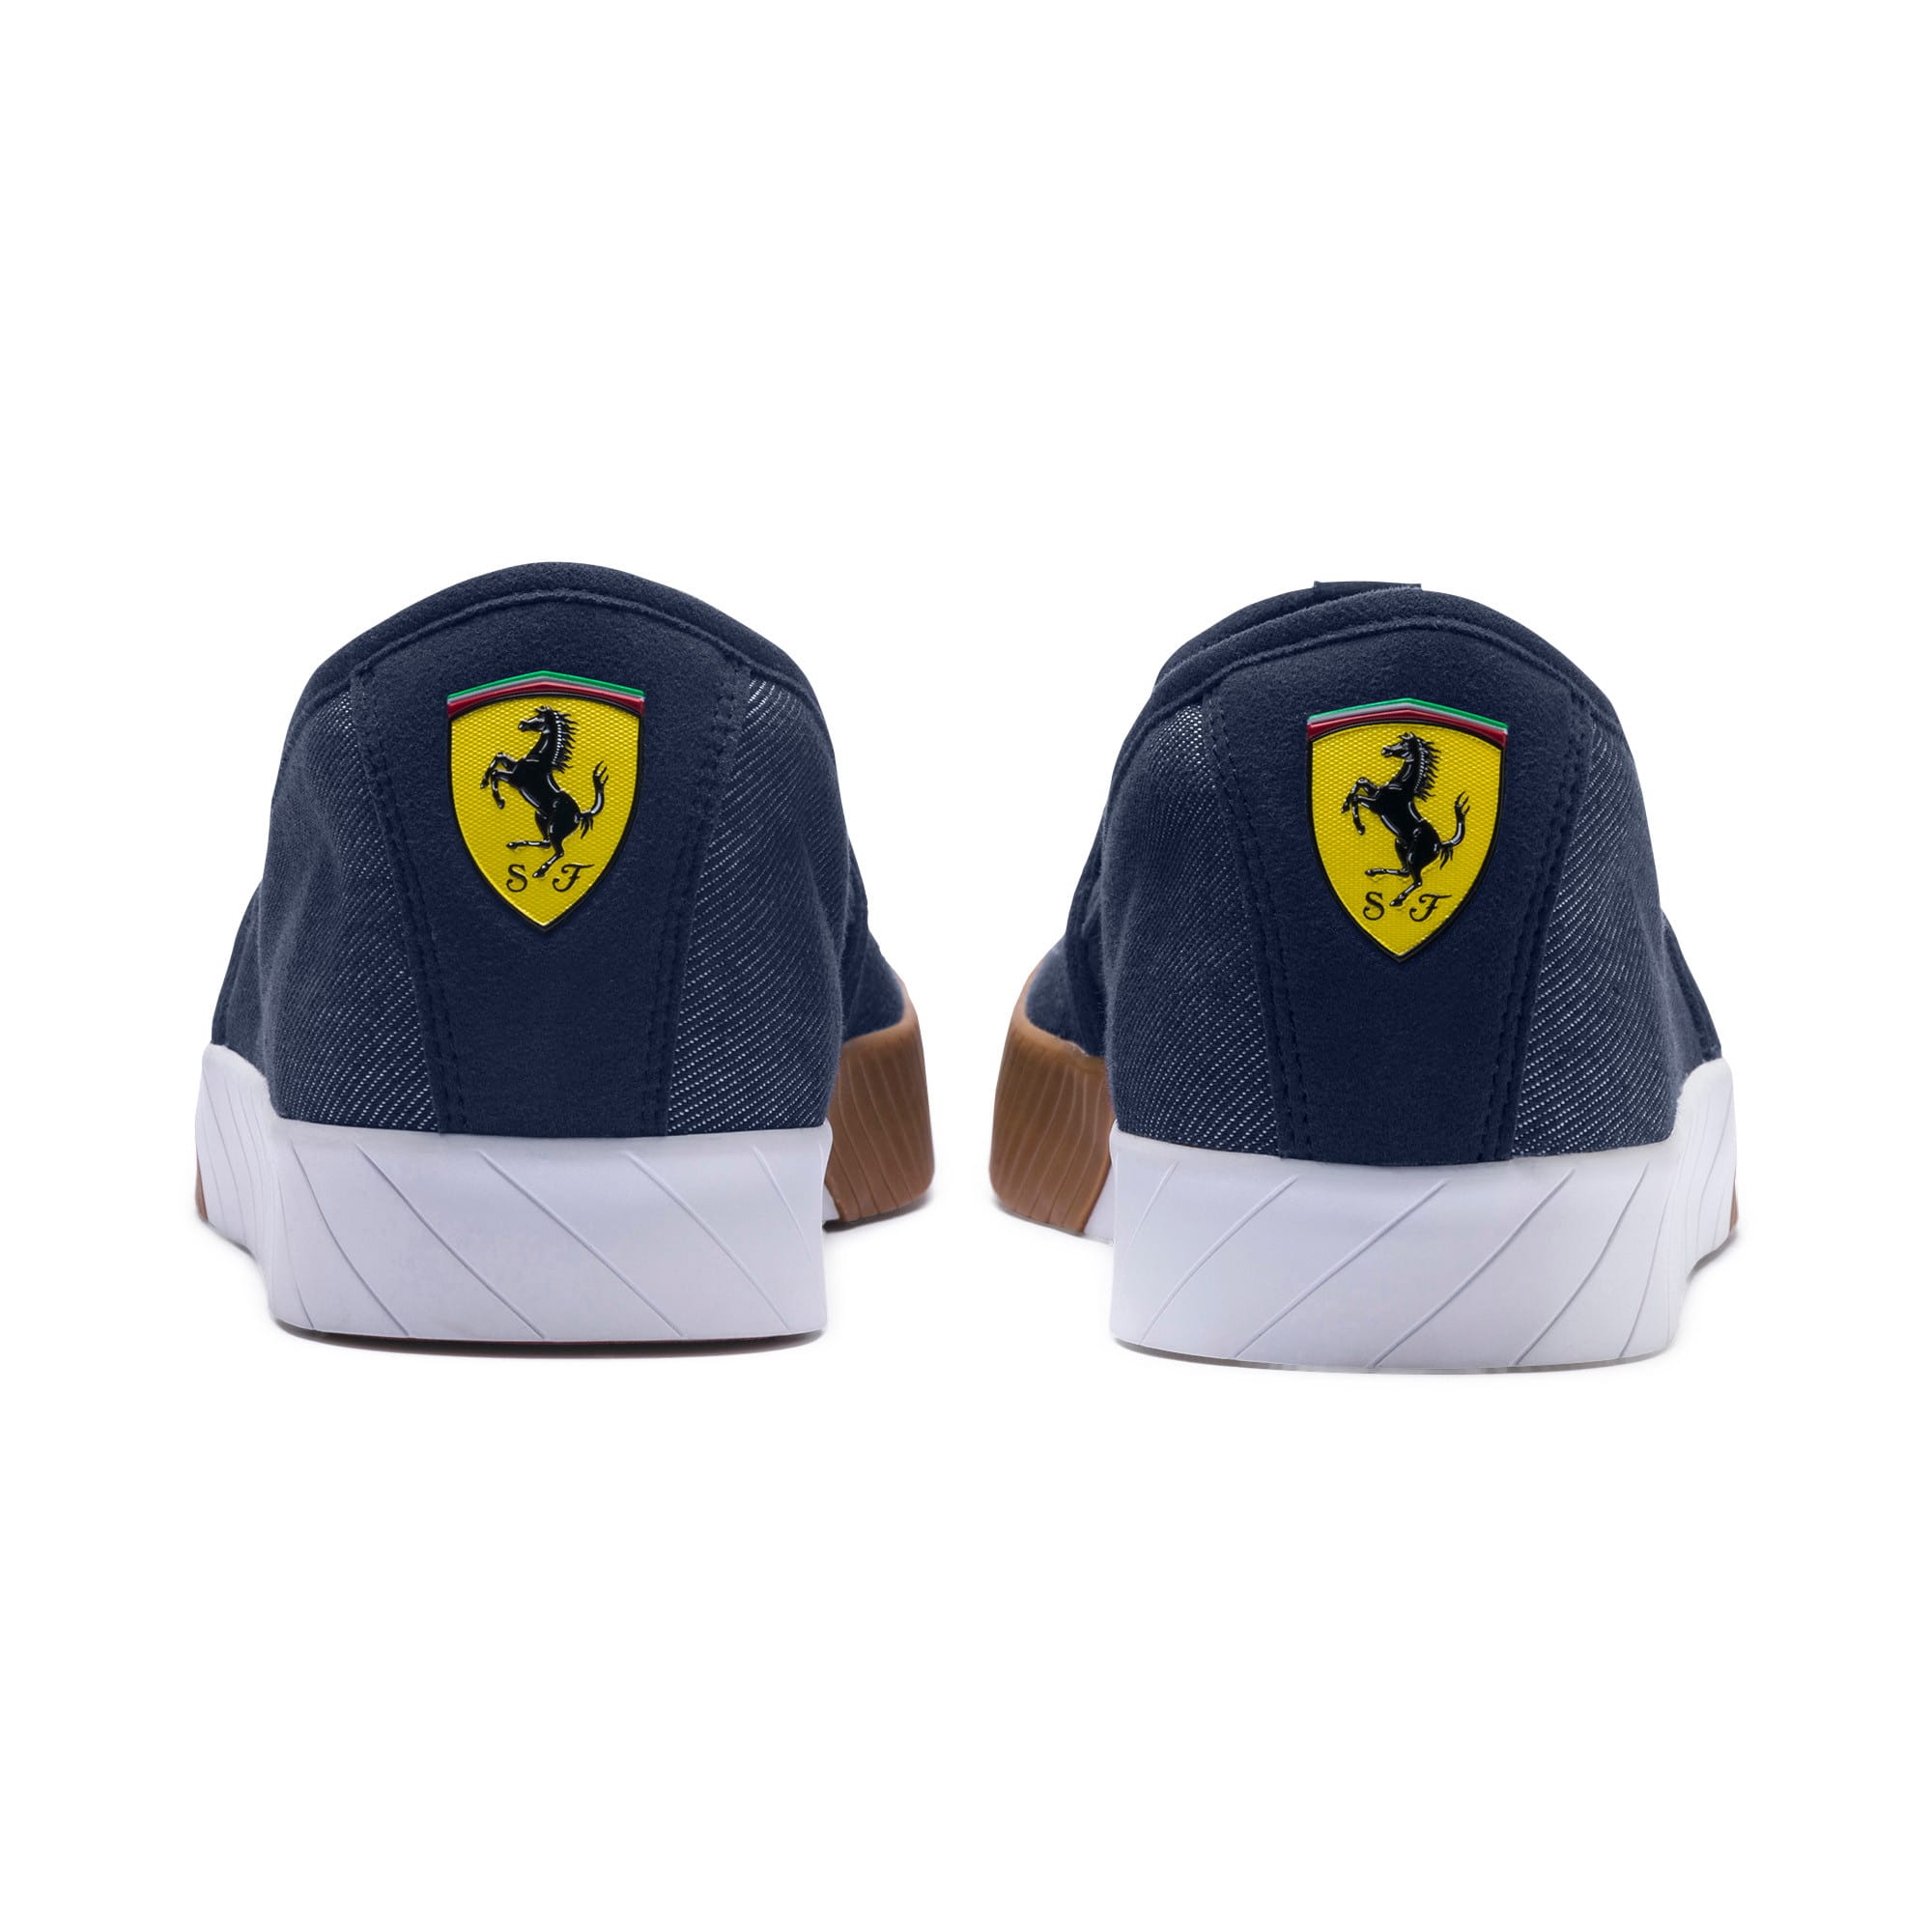 Thumbnail 3 of Scuderia Ferrari Men's Slip-On Track Shoes, Peacoat-Peacoat, medium